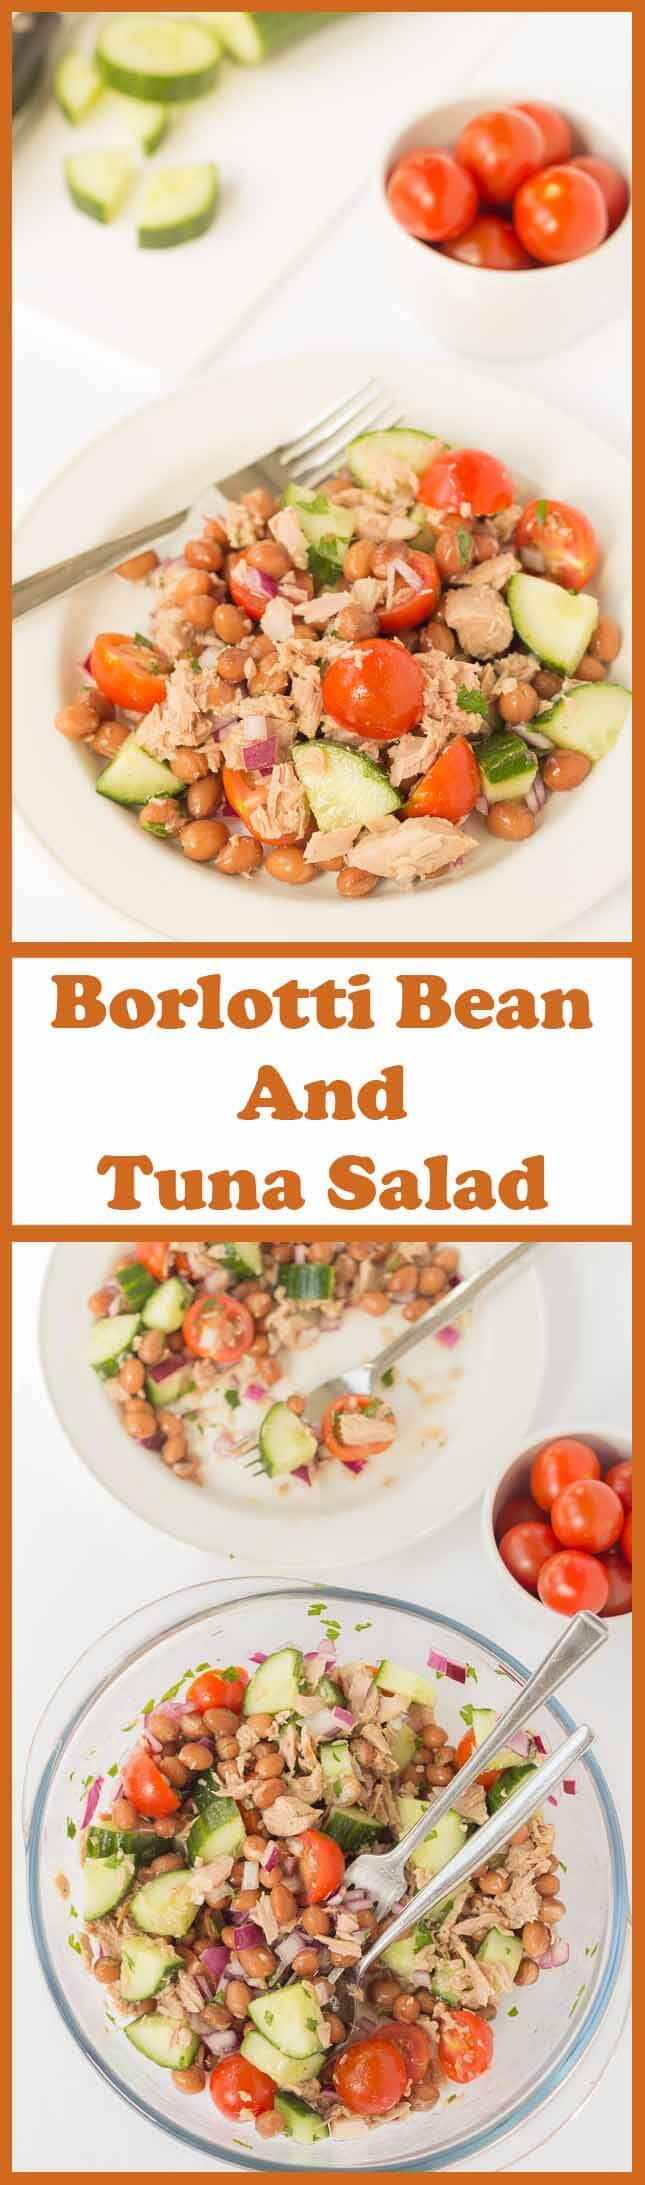 It only takes 15 minutes to make this simple borlotti bean and tuna salad. It's enough to feed a family of 4 and it's packed with healthy goodness. This tasty recipe makes for an excellent quick healthy meal, ideal as a lunch or dinner option!